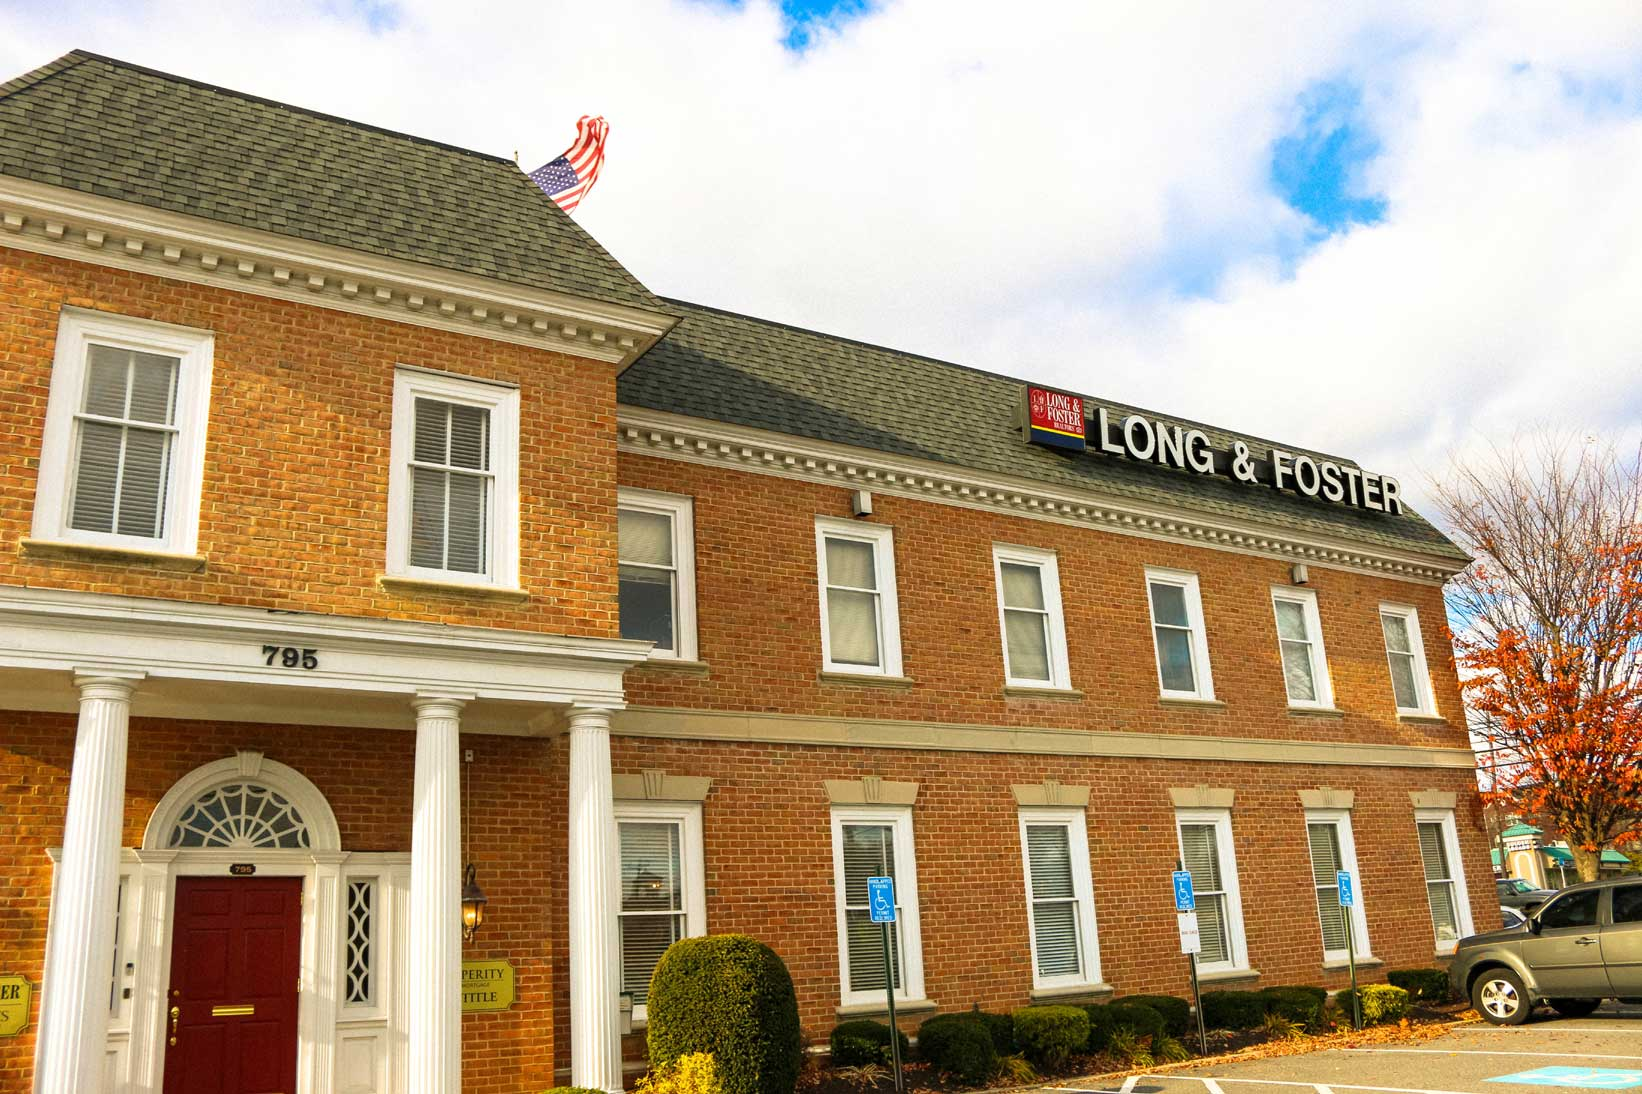 Long & Foster in Rockville, MD